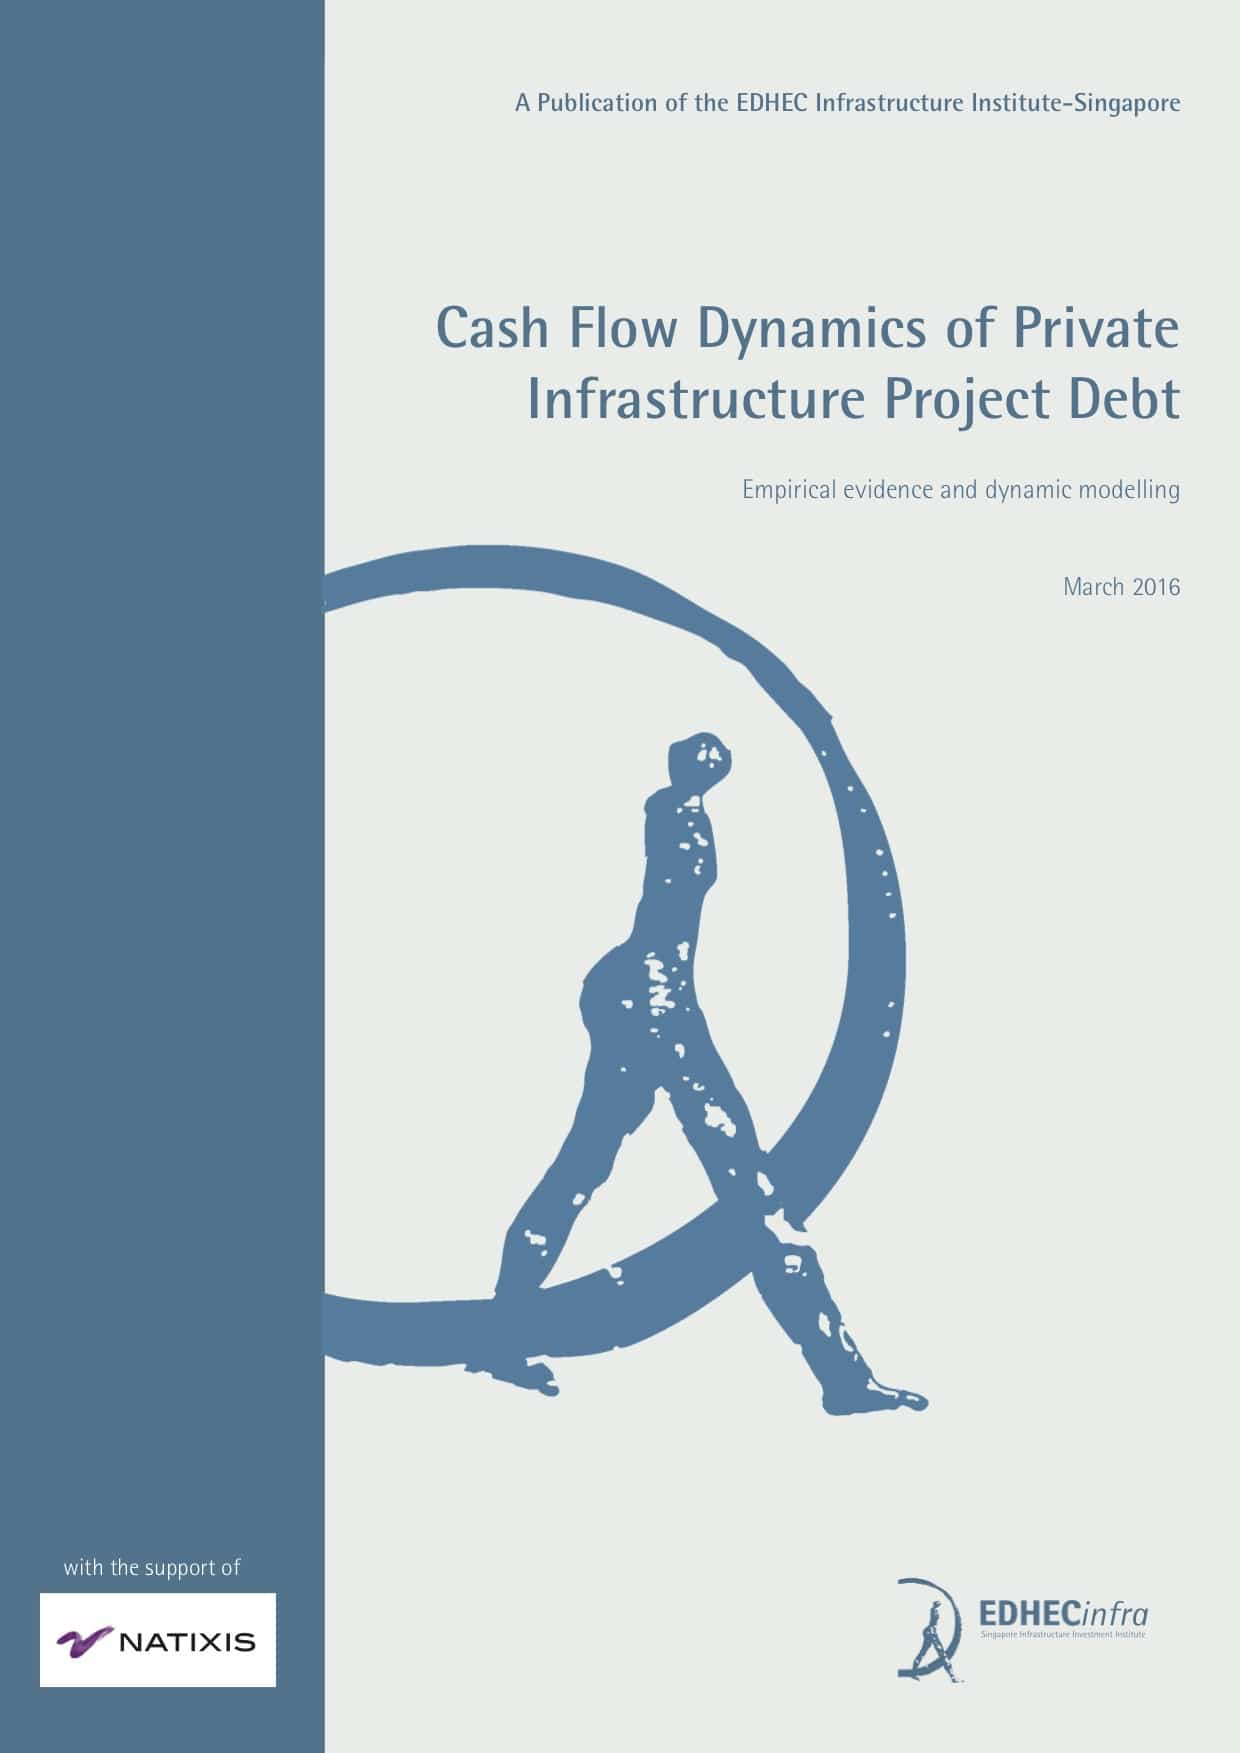 Cash Flow Dynamics of Private Infrastructure Project Debt